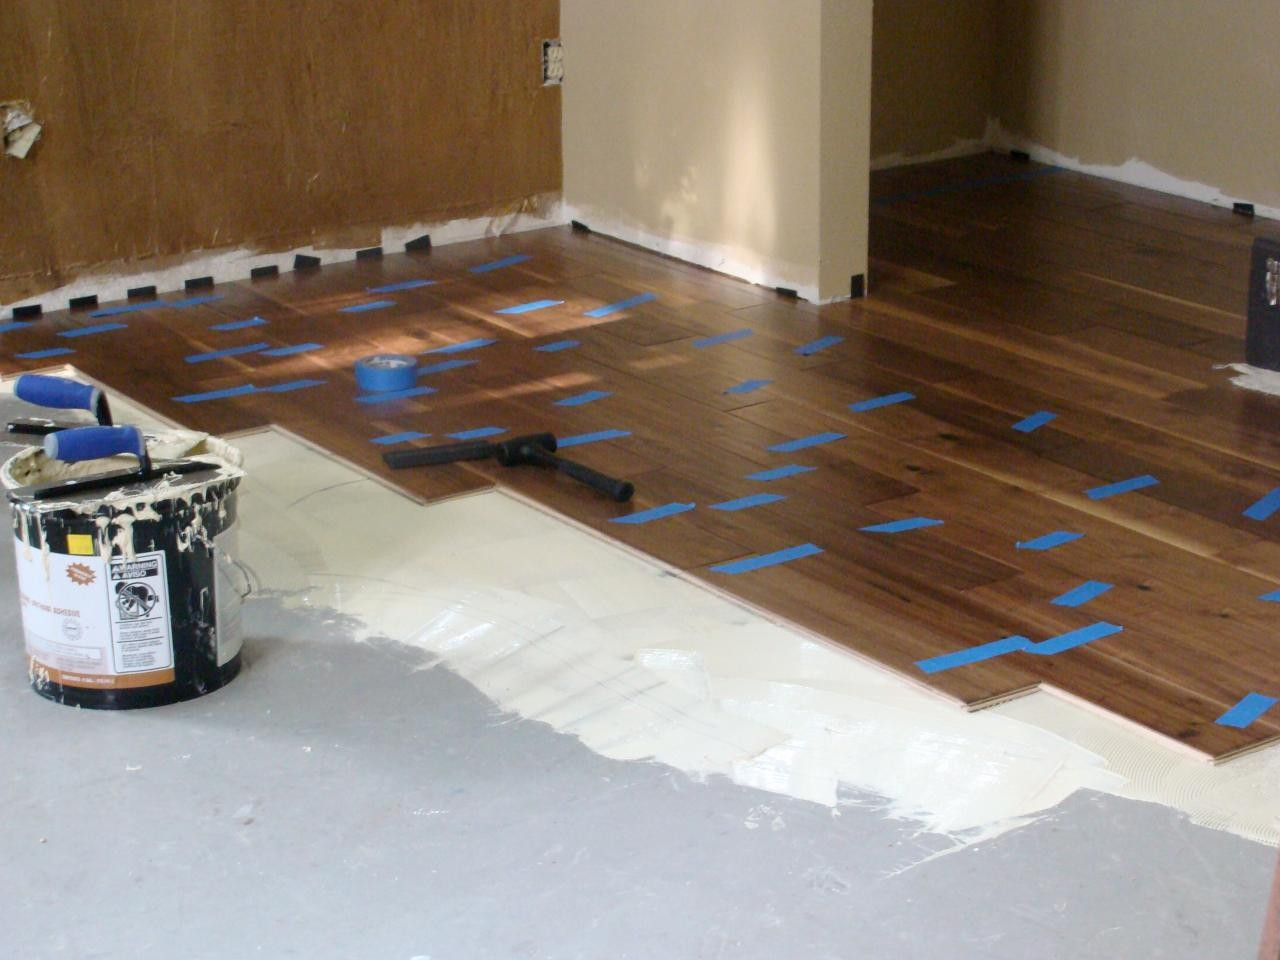 How Do You Install Engineered Hardwood Floors On Concrete Of 13 Luxury Homemade Hardwood Floor Cleaner Images Dizpos Com Regarding Homemade Hardwood Floor Cleaner Inspirational Installing Hardwood Flooring Over Concrete How tos Gallery Of 13 Luxury